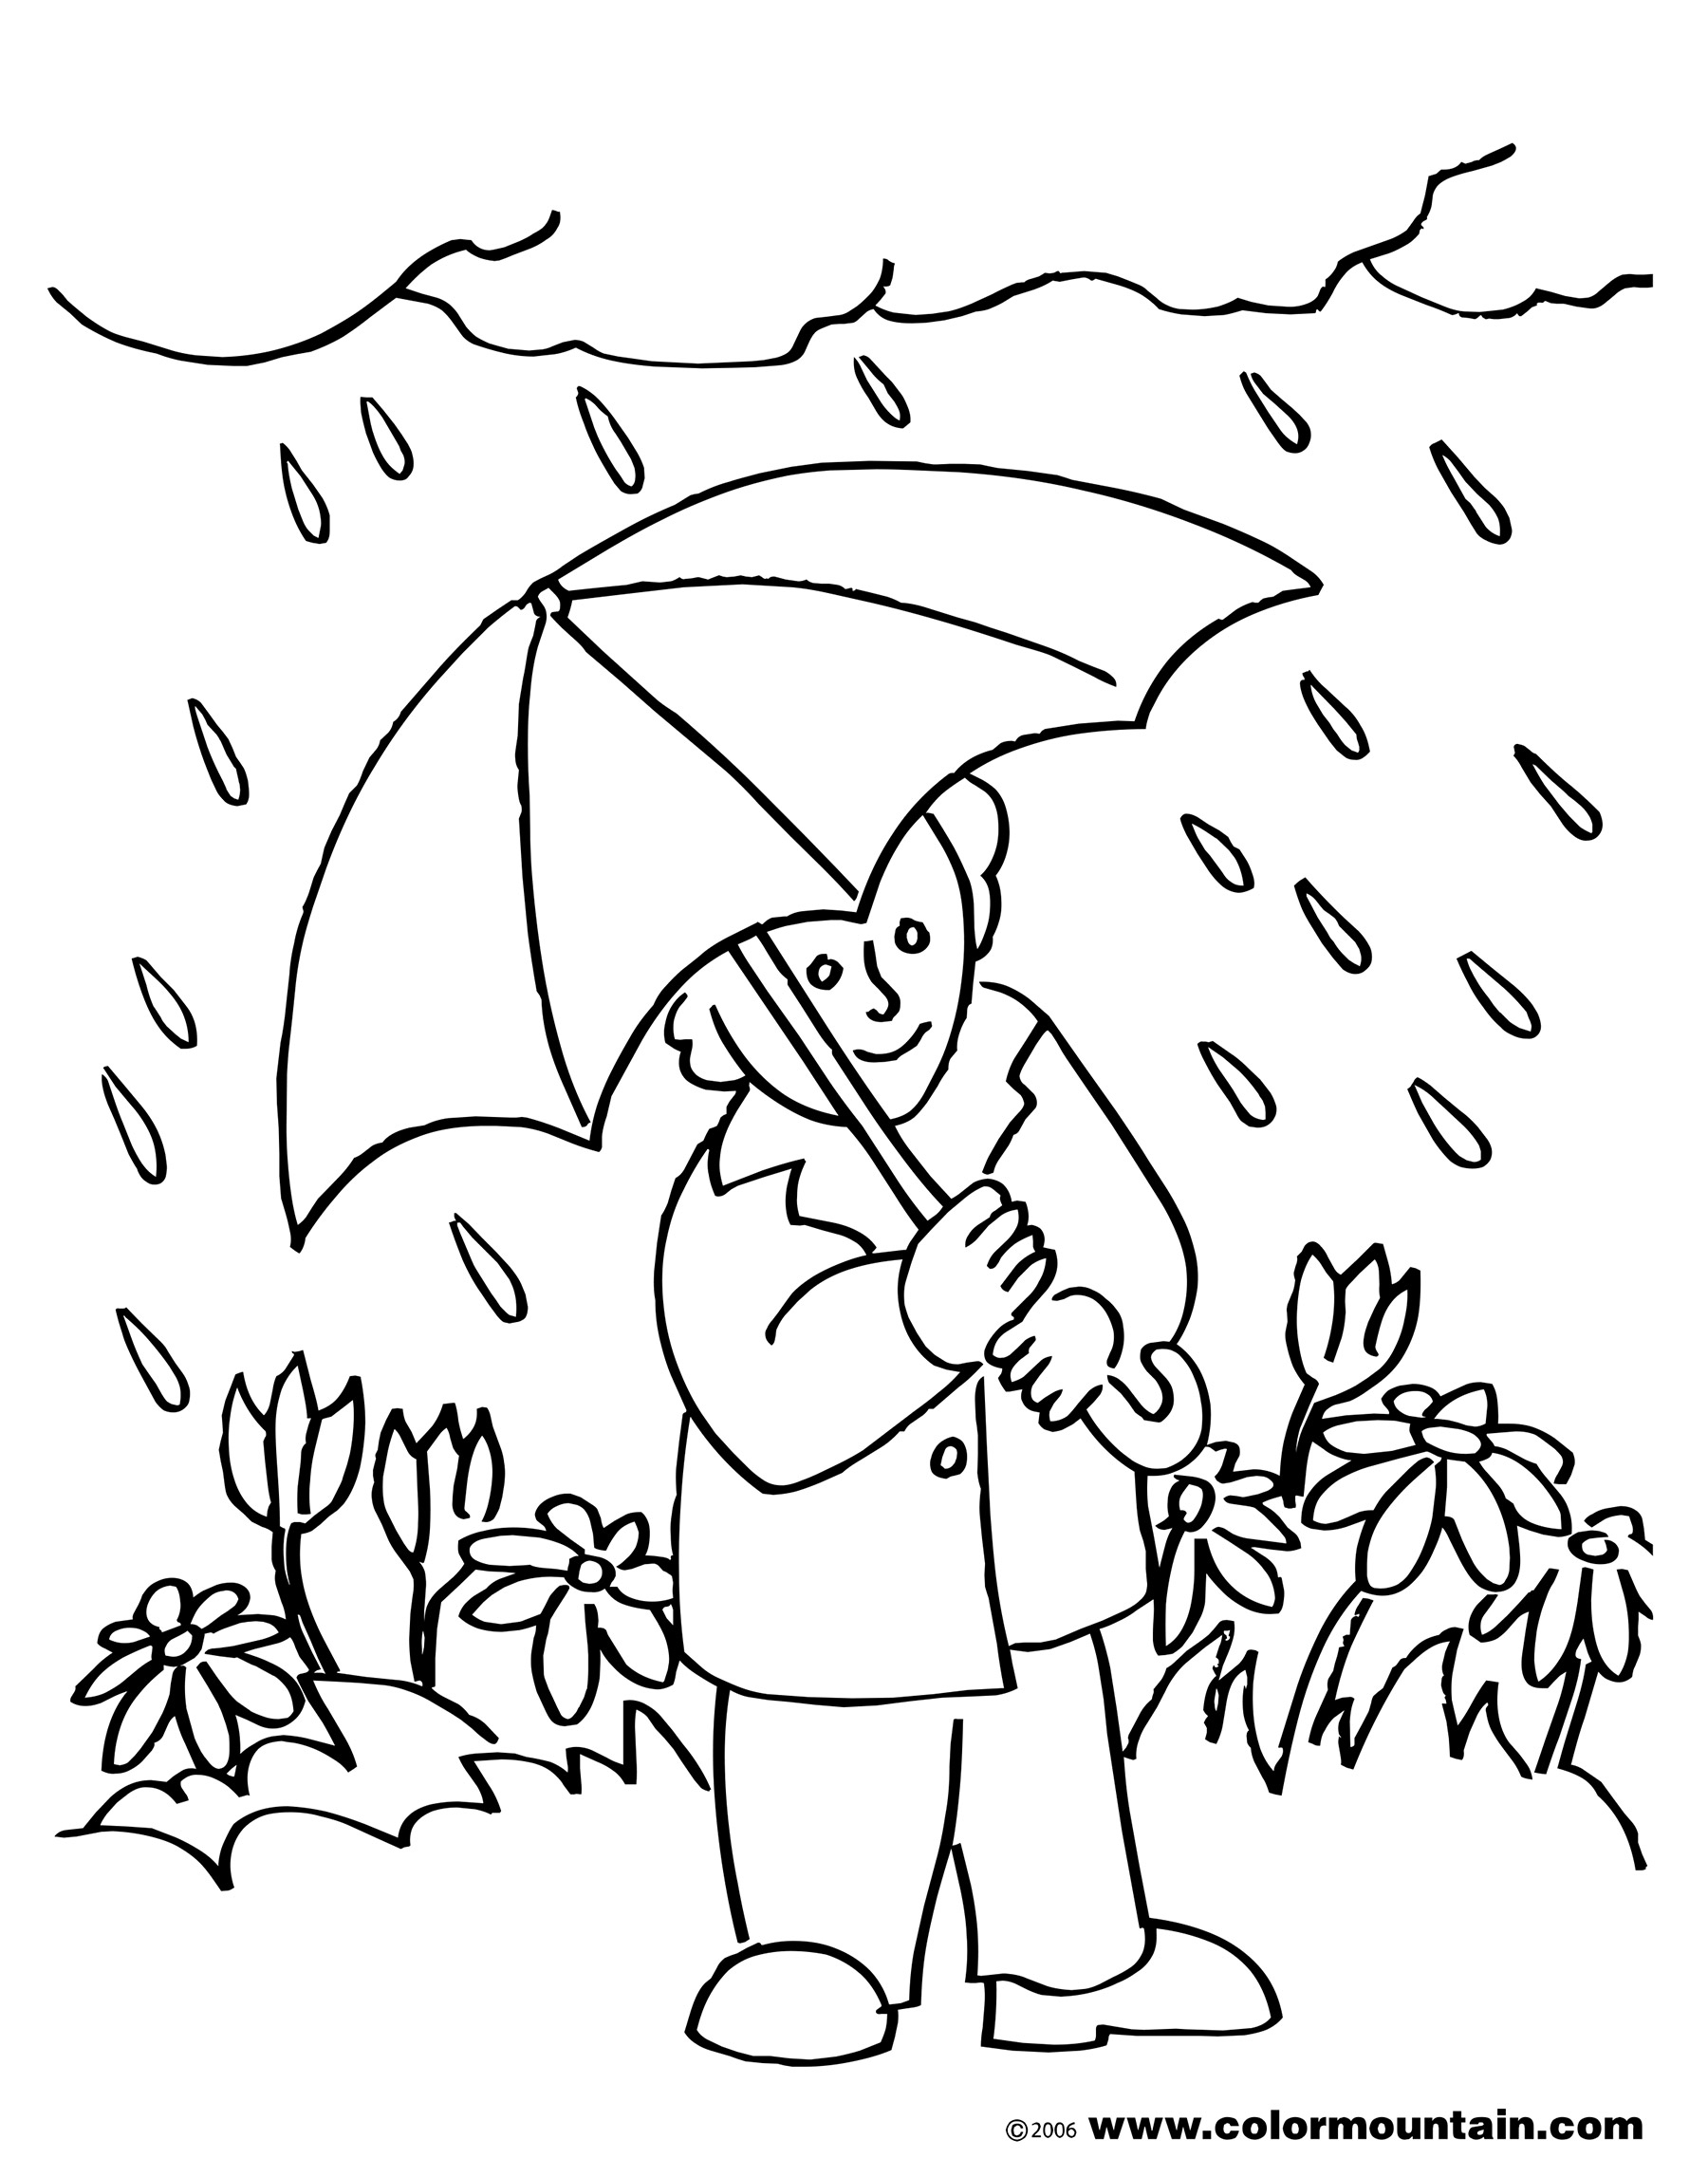 Free Sunny Clipart Black And White, Download Free Clip Art.